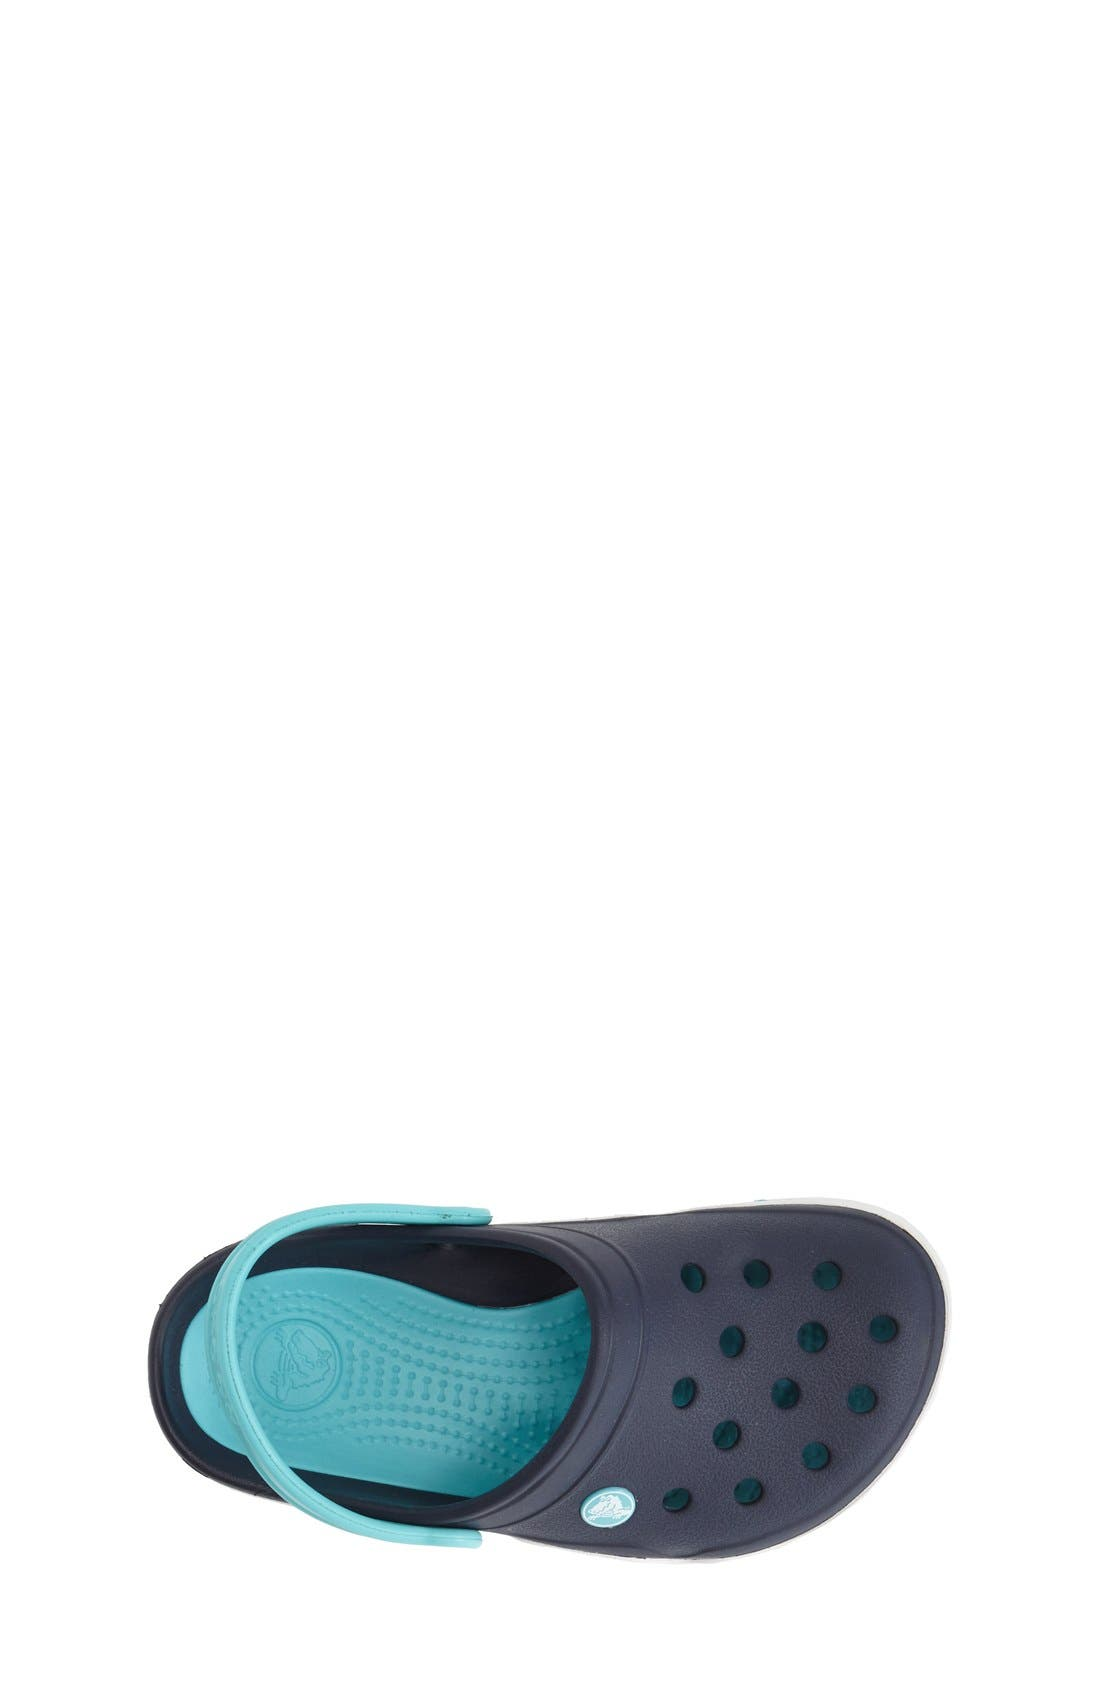 Alternate Image 3  - CROCS™ 'Front Court' Sandal (Walker, Toddler & Little Kid)